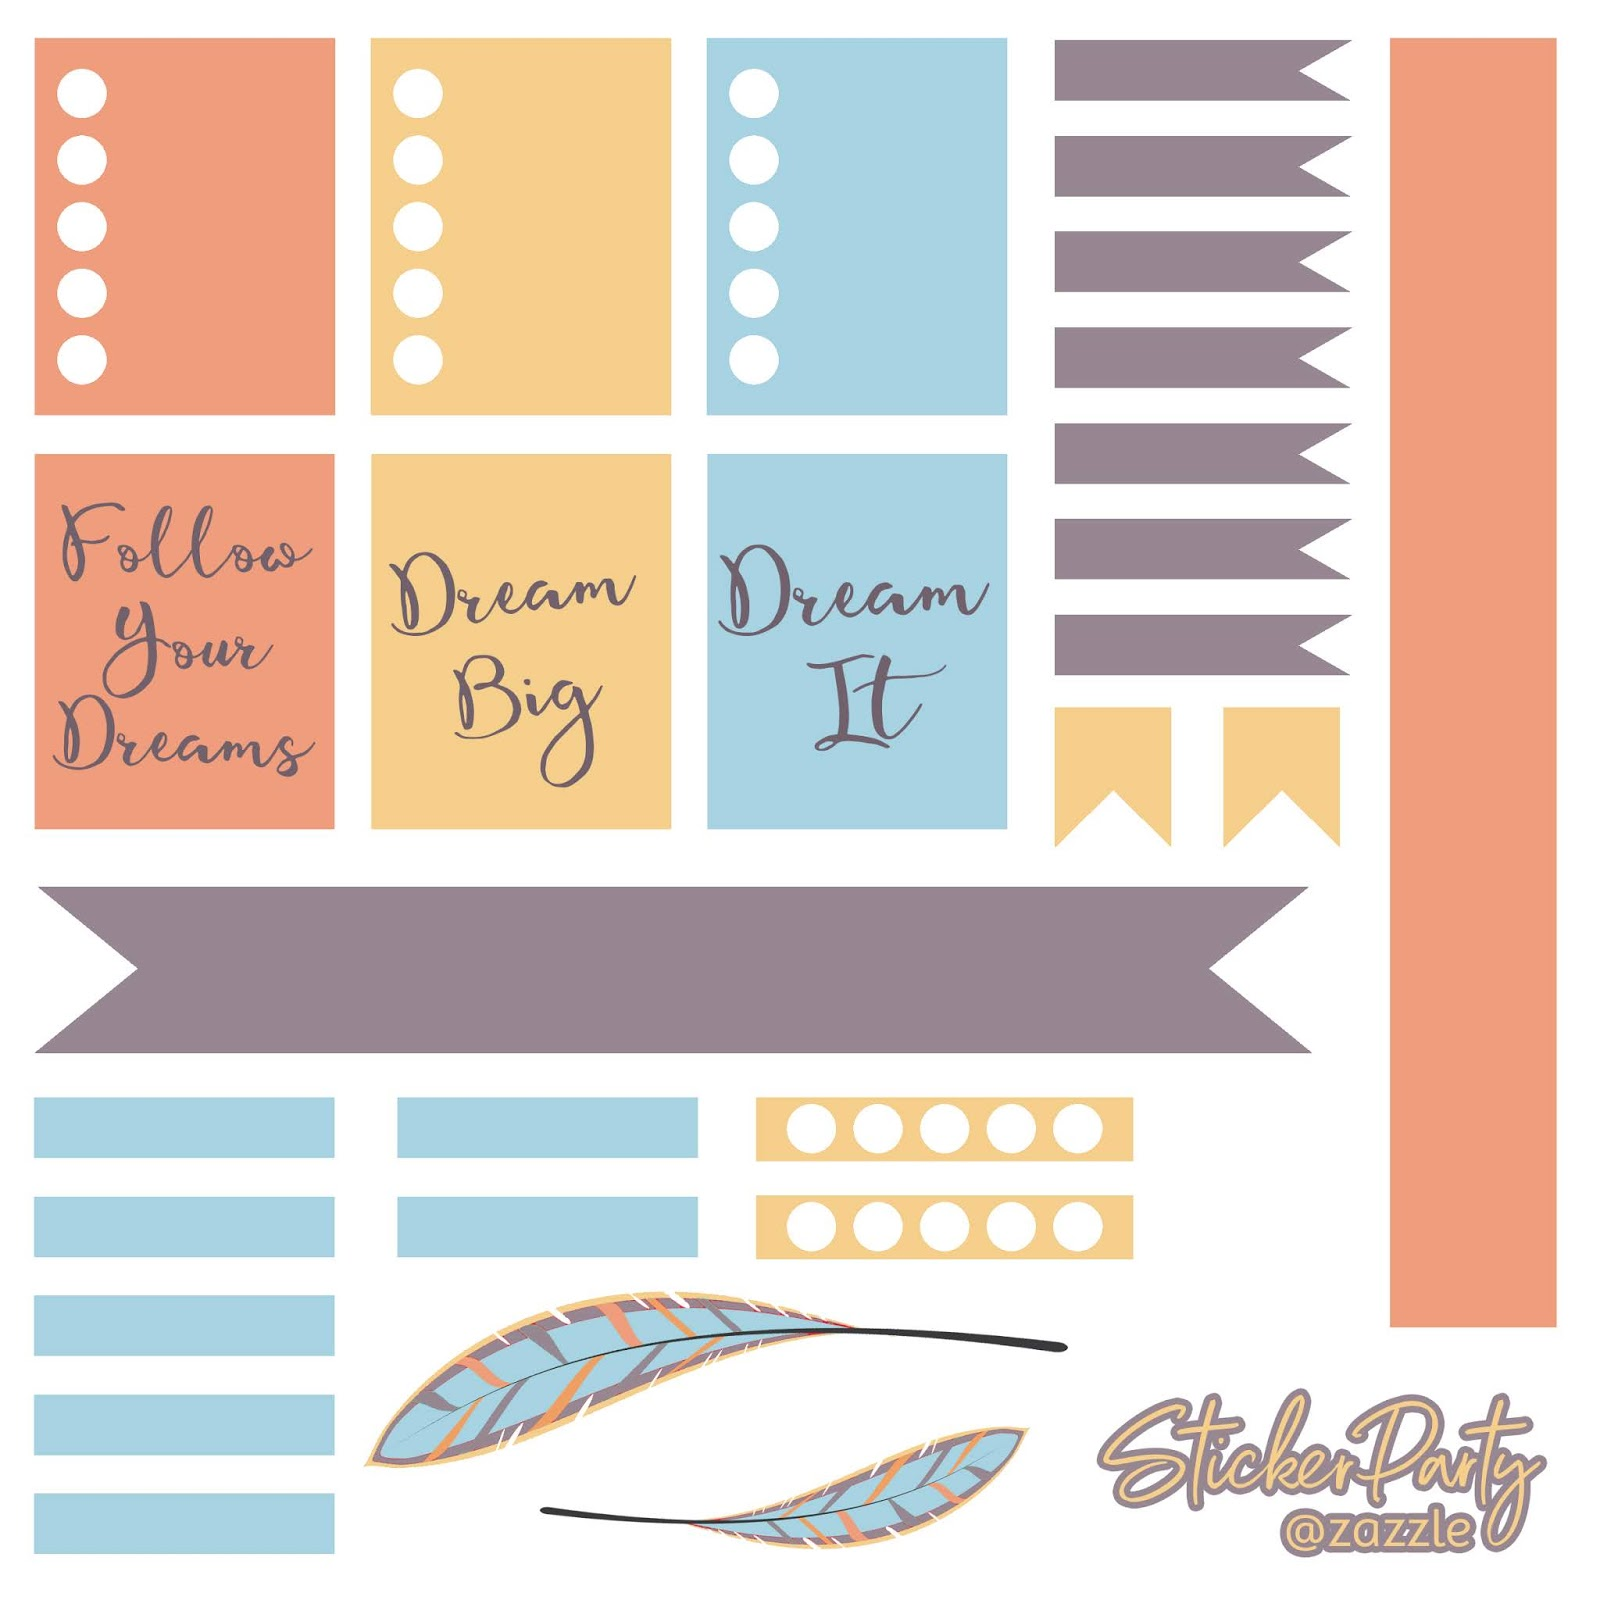 free dream big planner sticker sheet. Planner stickers fit ECLP (Erin Condren Life Planner) and Recollections planners. A digital download printable in orange, yellow, blue, and purple.